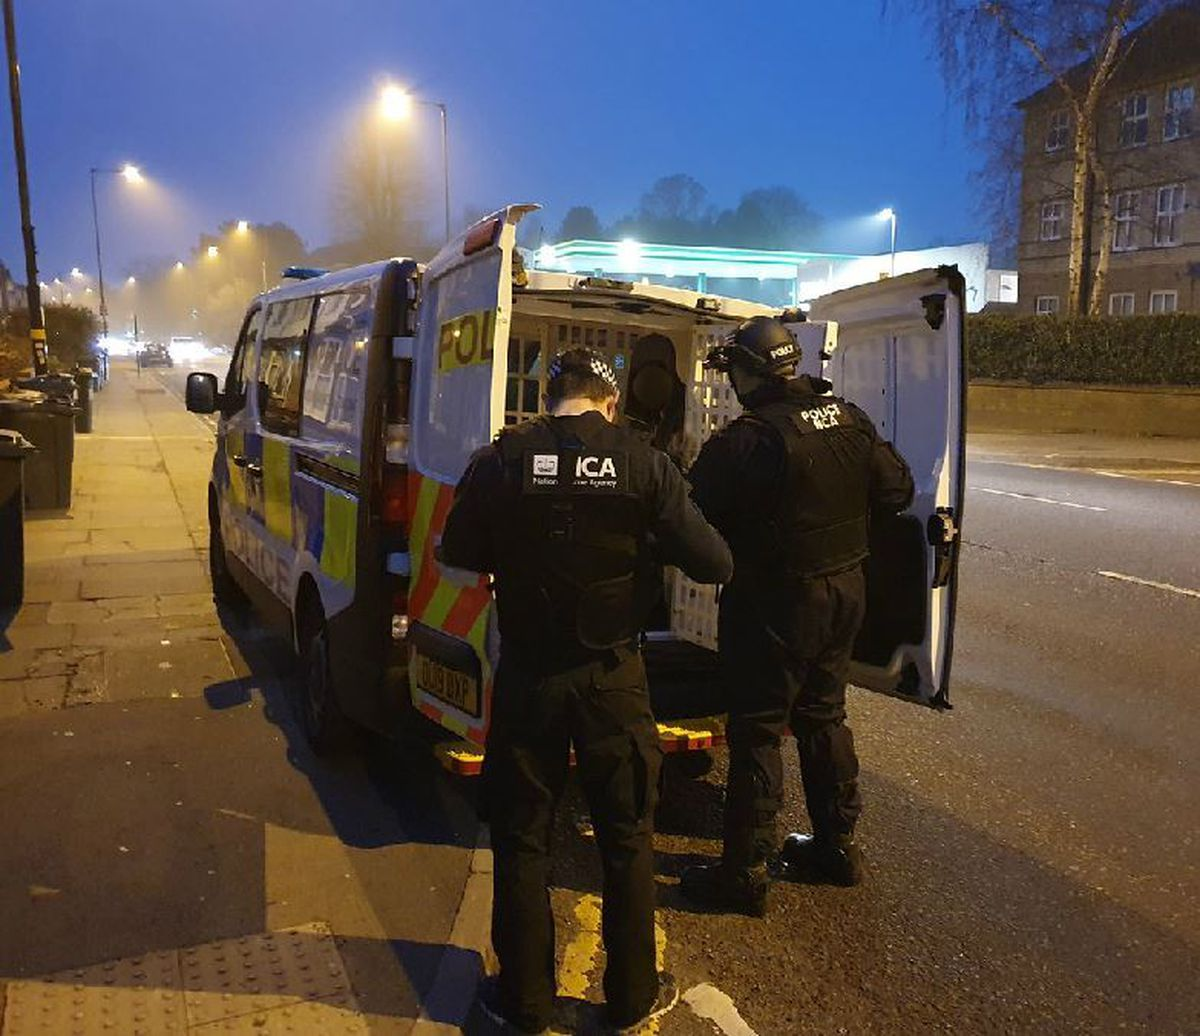 The police operation in Birmingham. Photo: NCA.